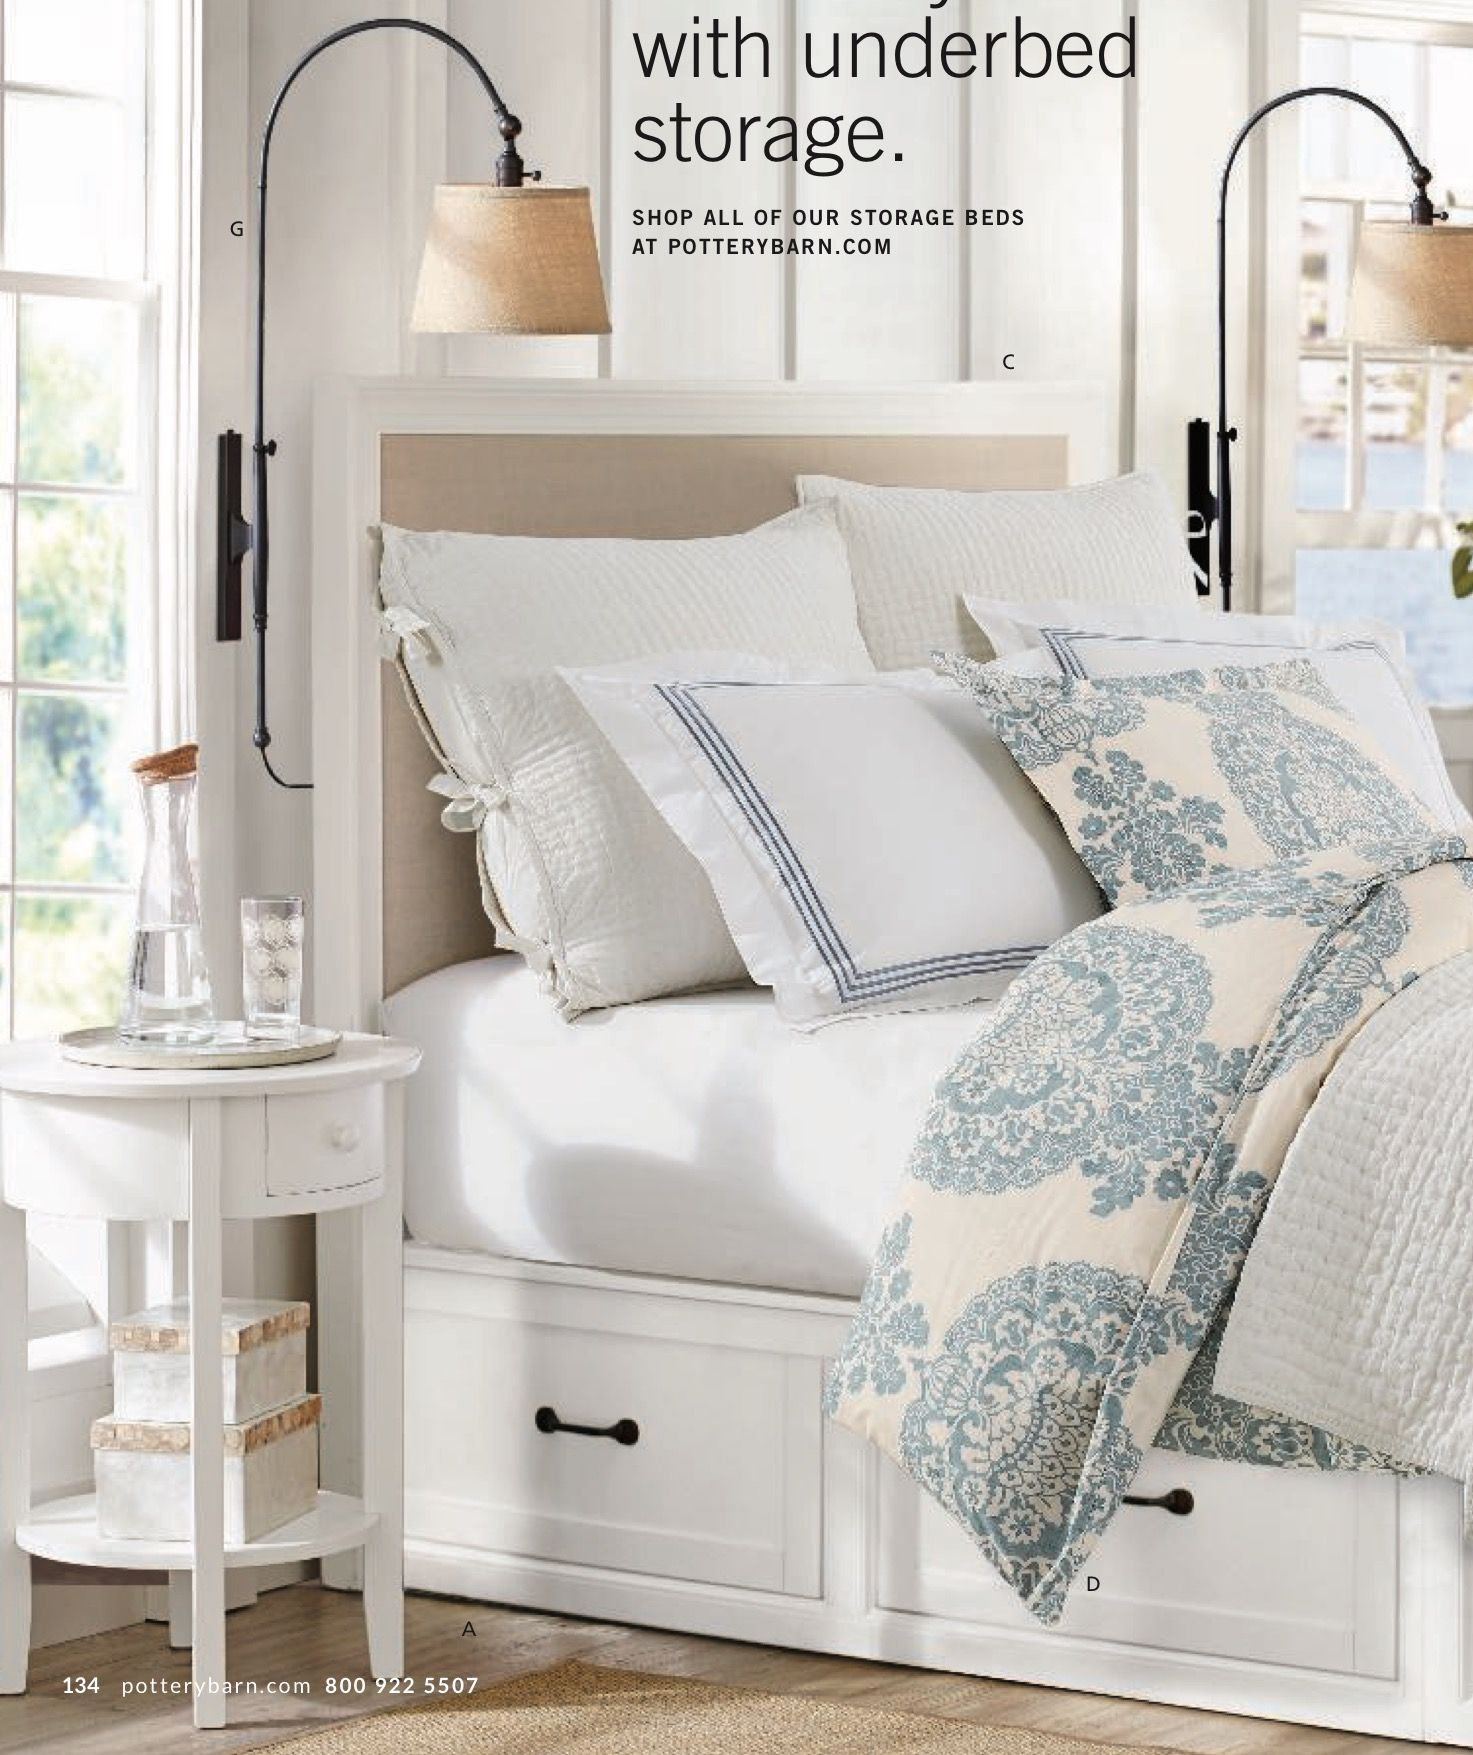 Montgomery Upholstered Headboard Attached To Stratton Bed With Drawers Must Purchase Attachment Brac Bedroom Design Bed Frame With Drawers Guest Bedroom Decor